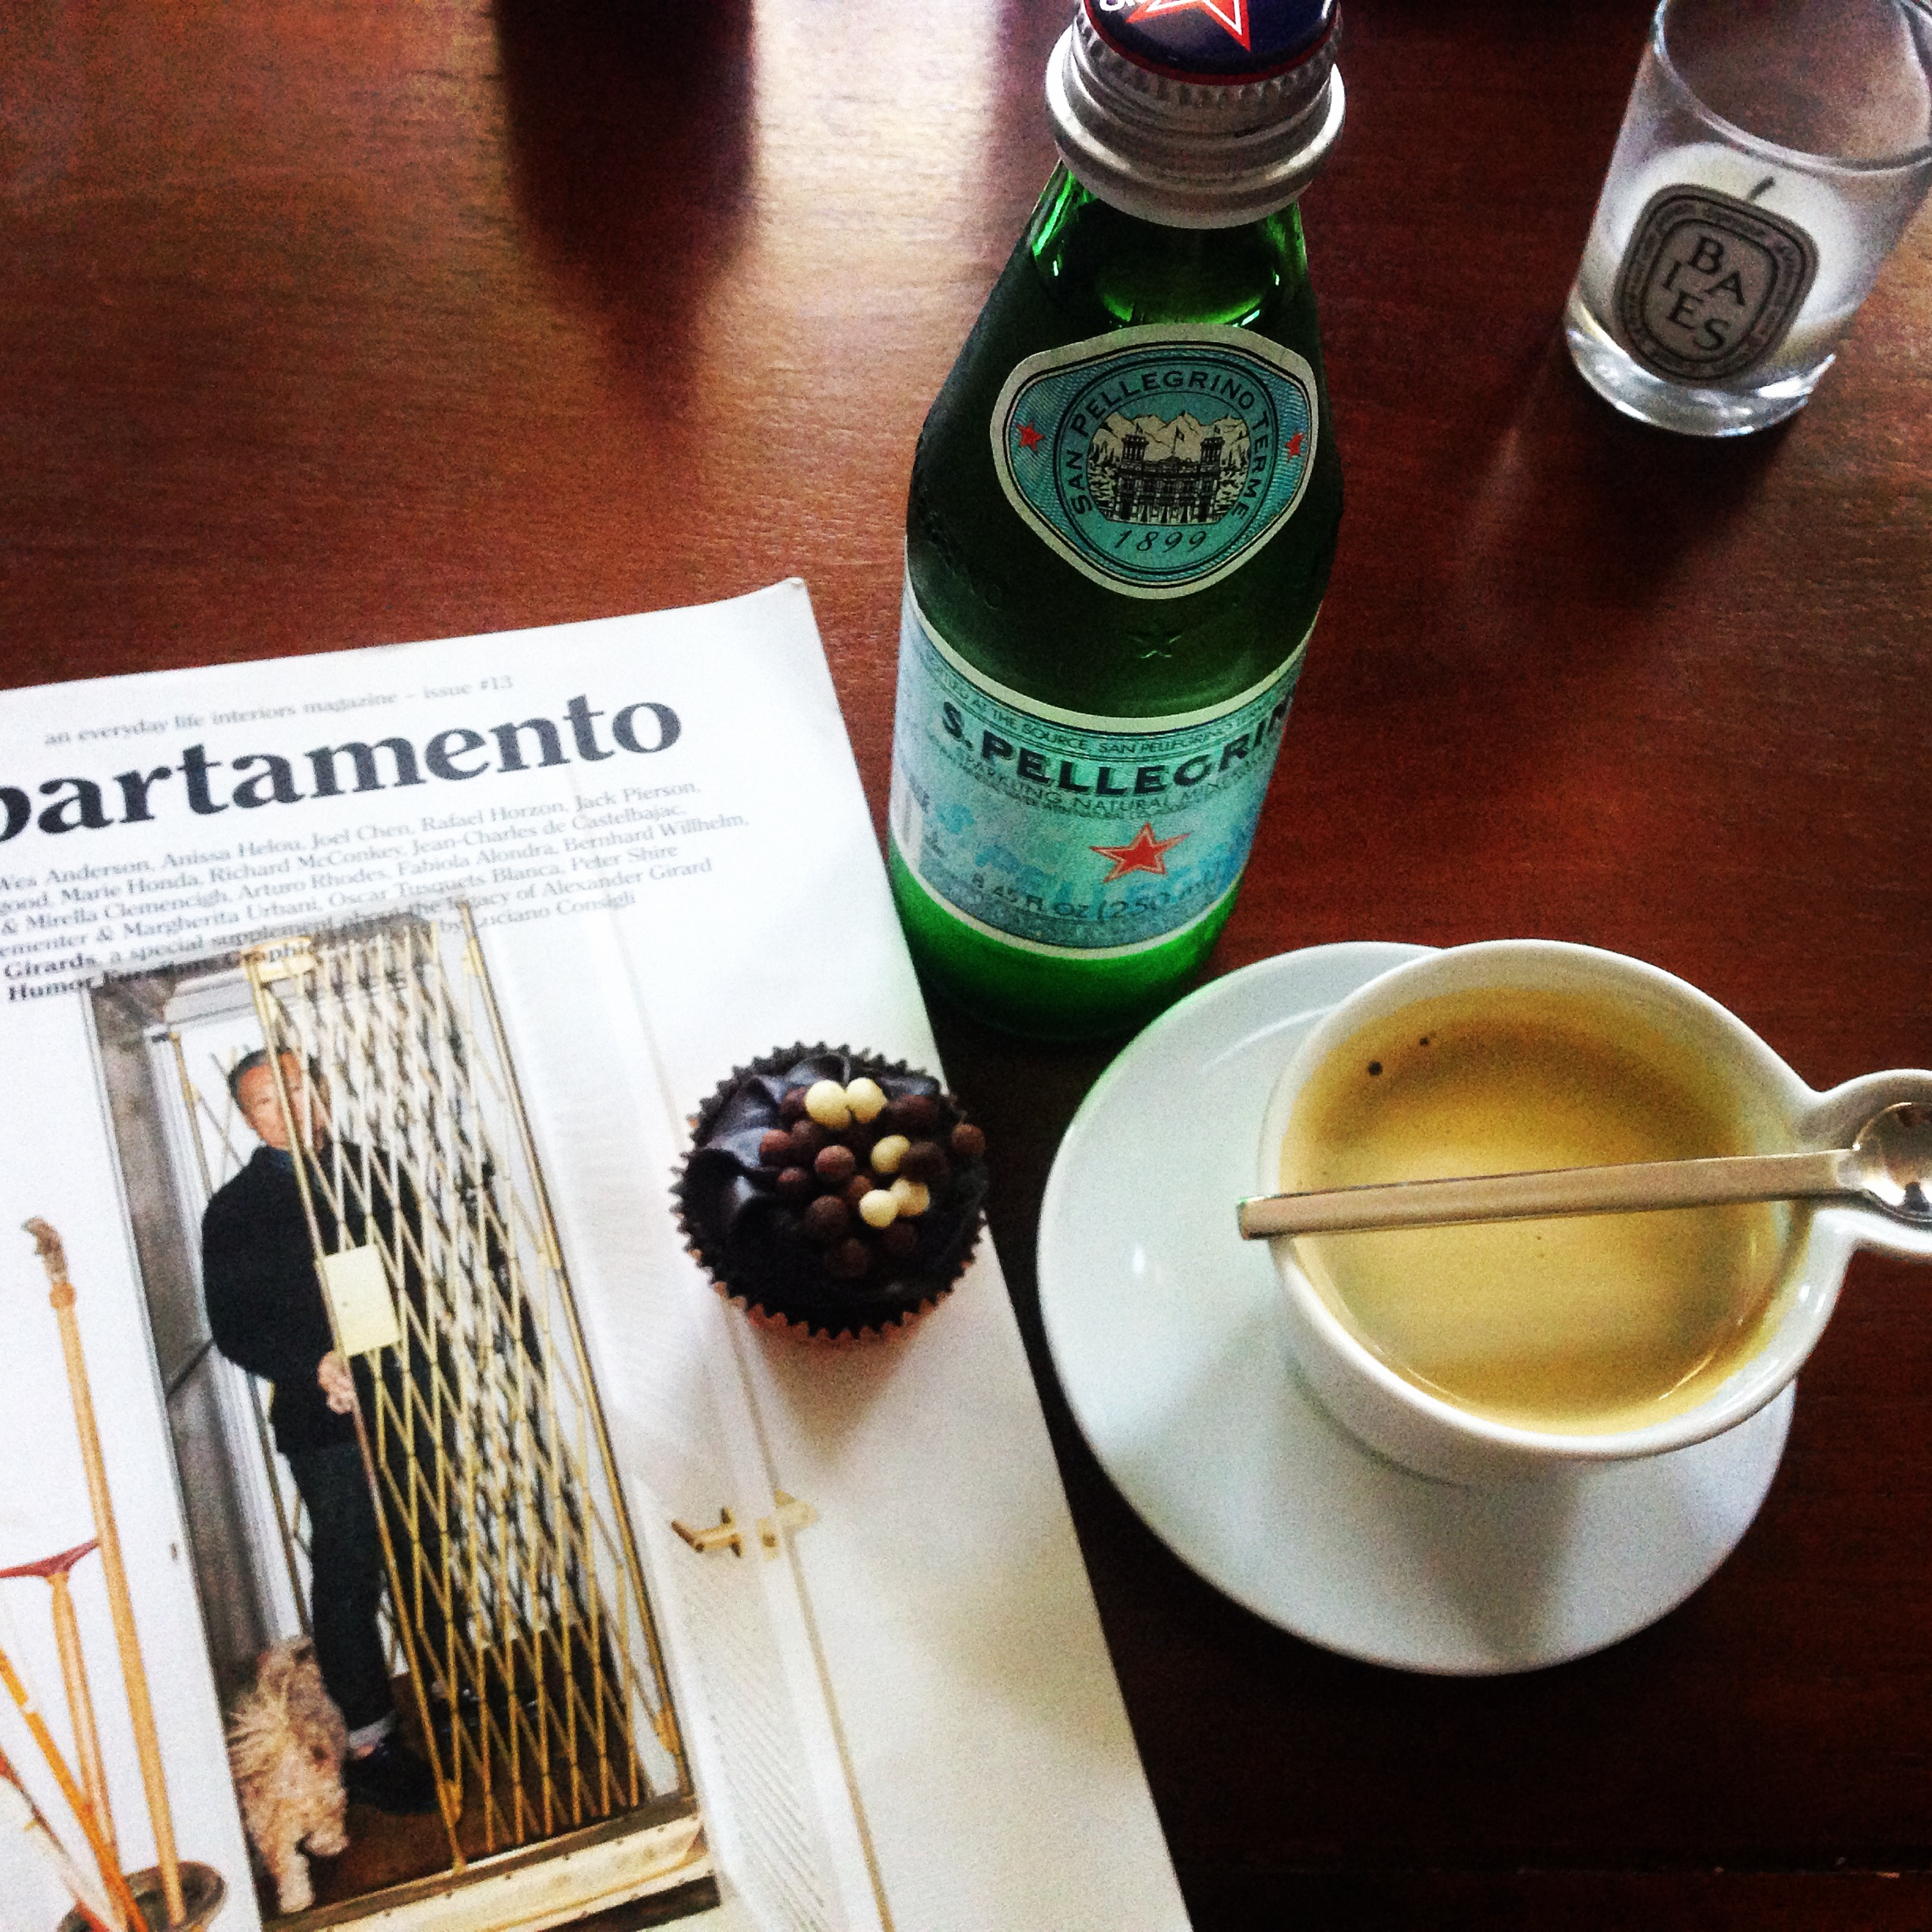 My afternoon espresso, mini cupcake and magazine (the Saturday afternoon after siesta moment).